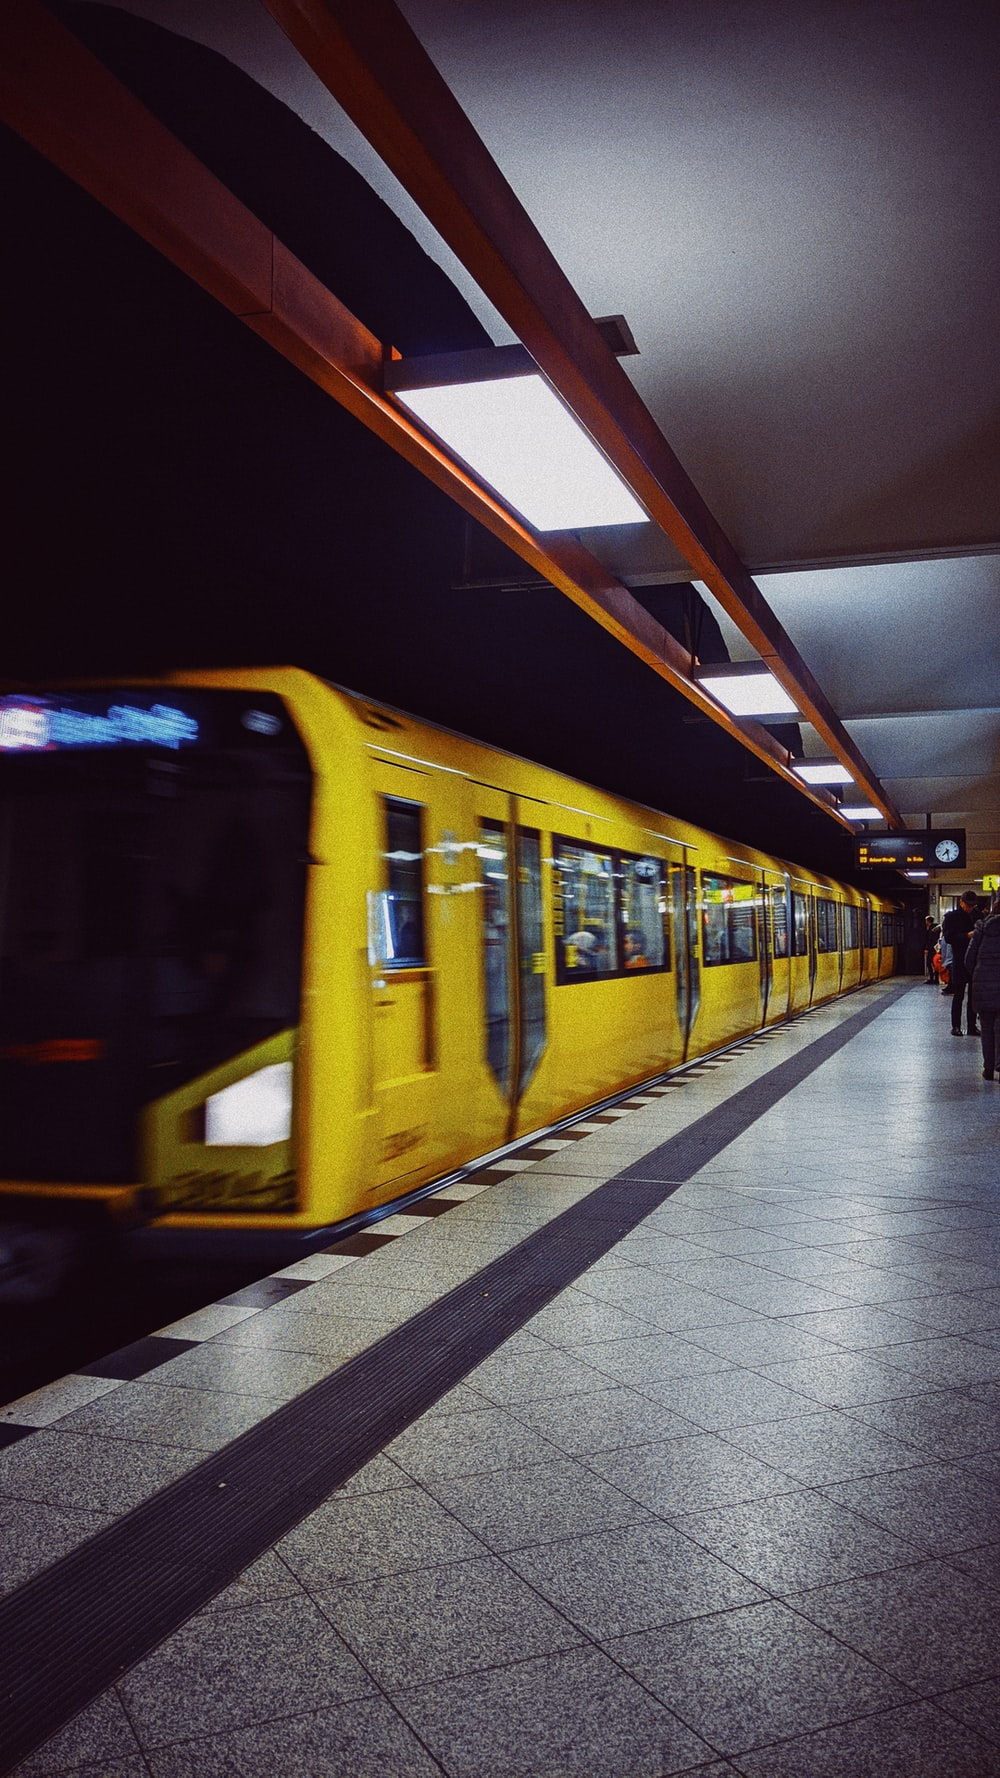 yellow train on station at night time